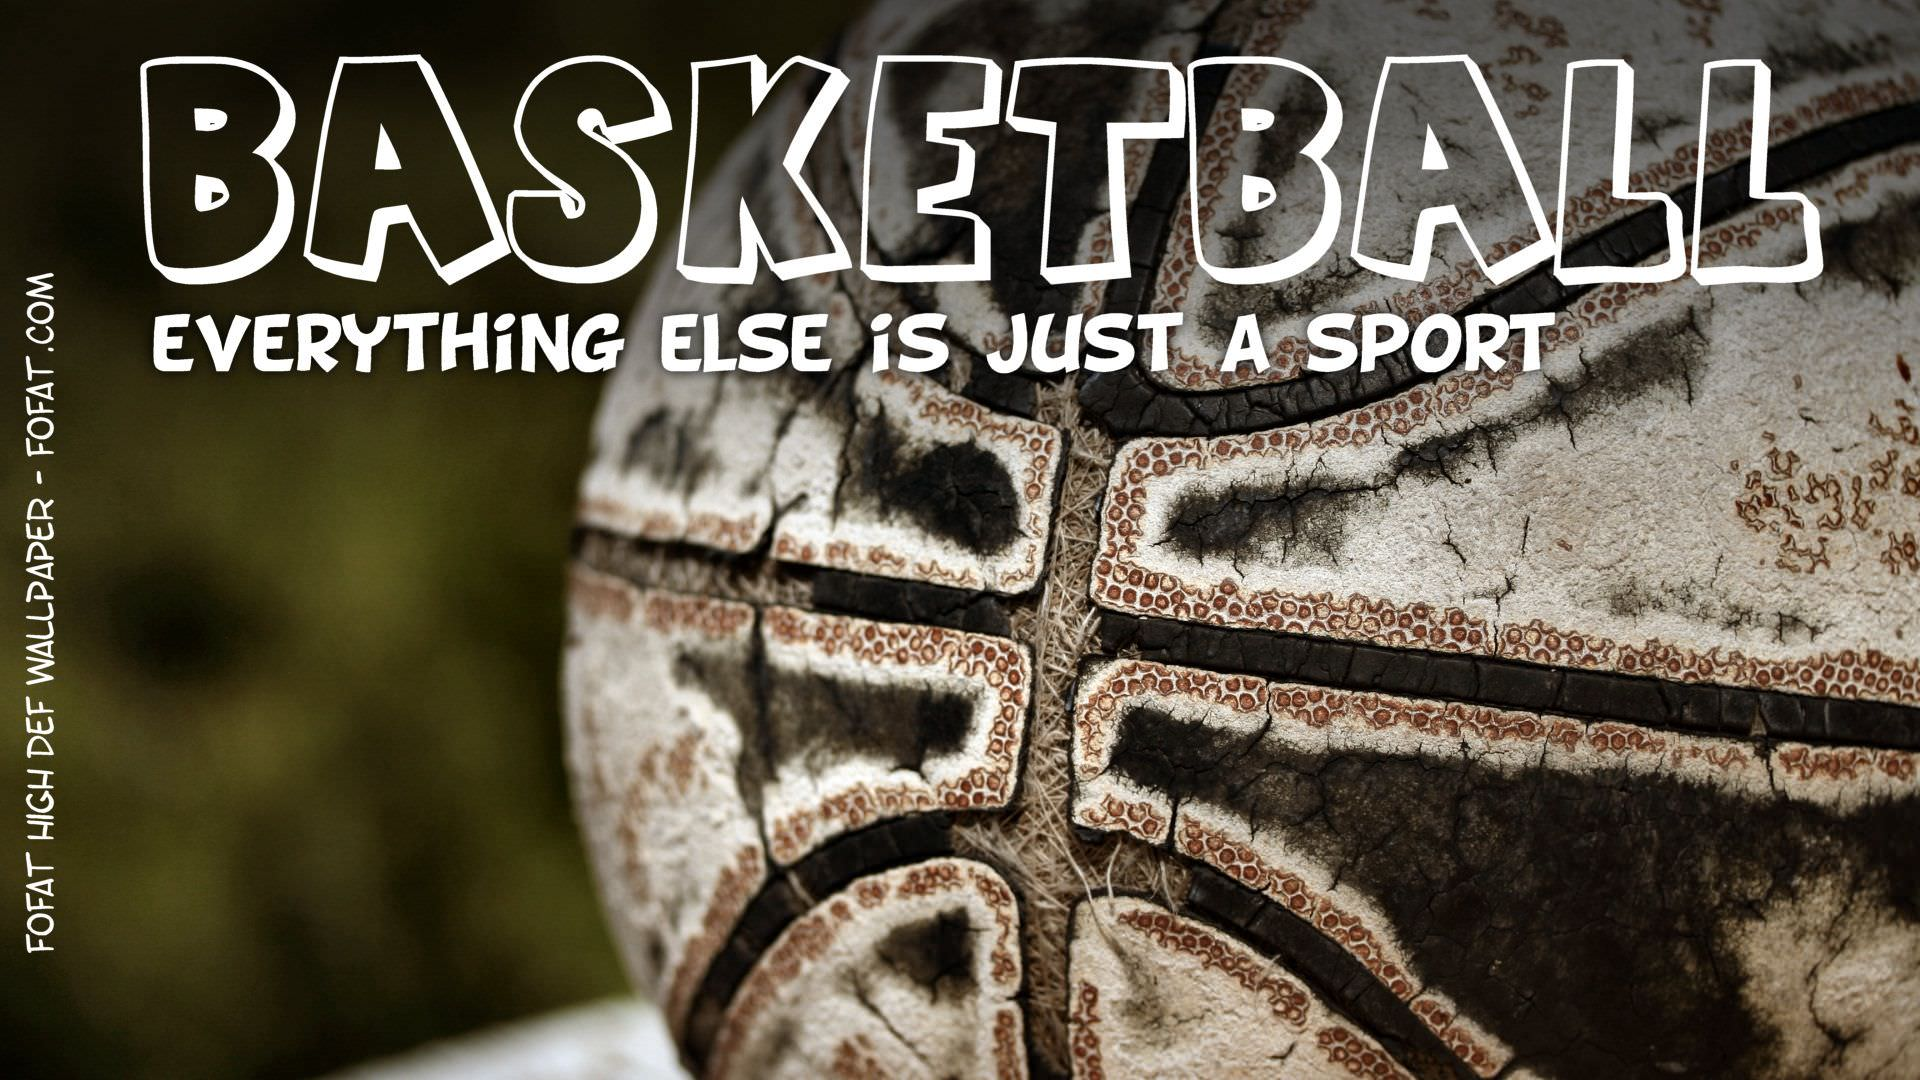 creative basketball image